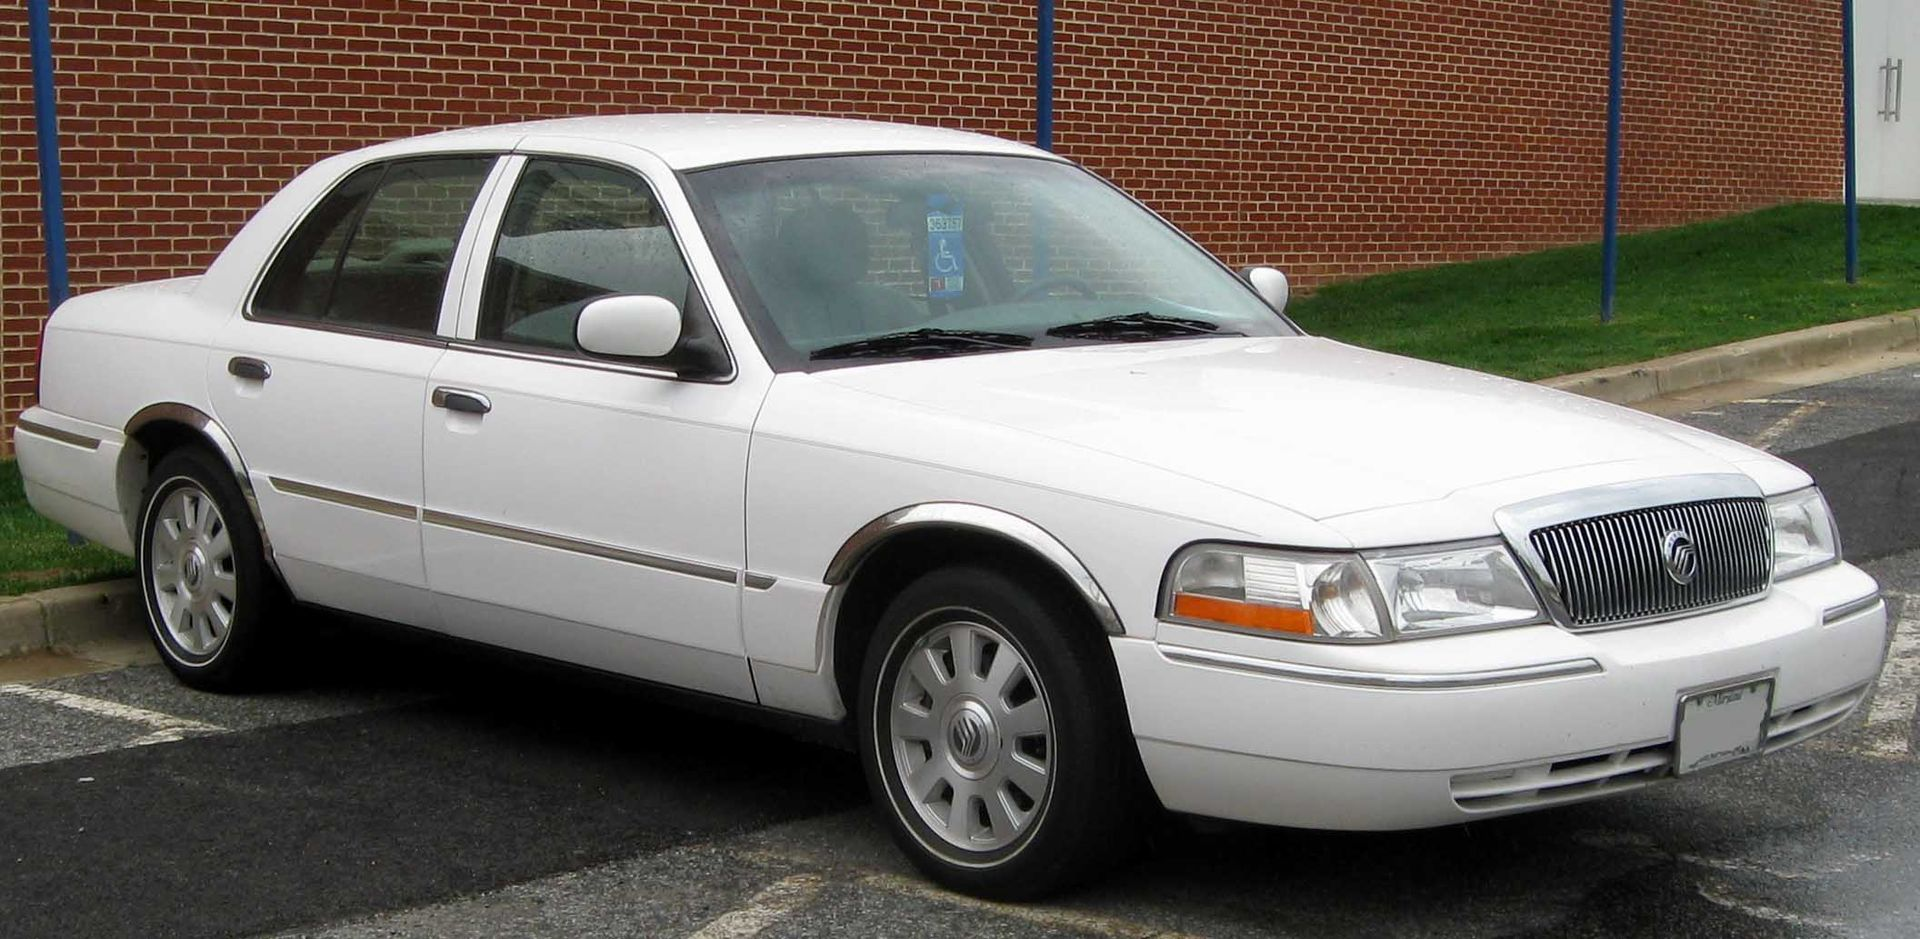 Auto Glass and Window Replacement for Mercury Grand Marquis